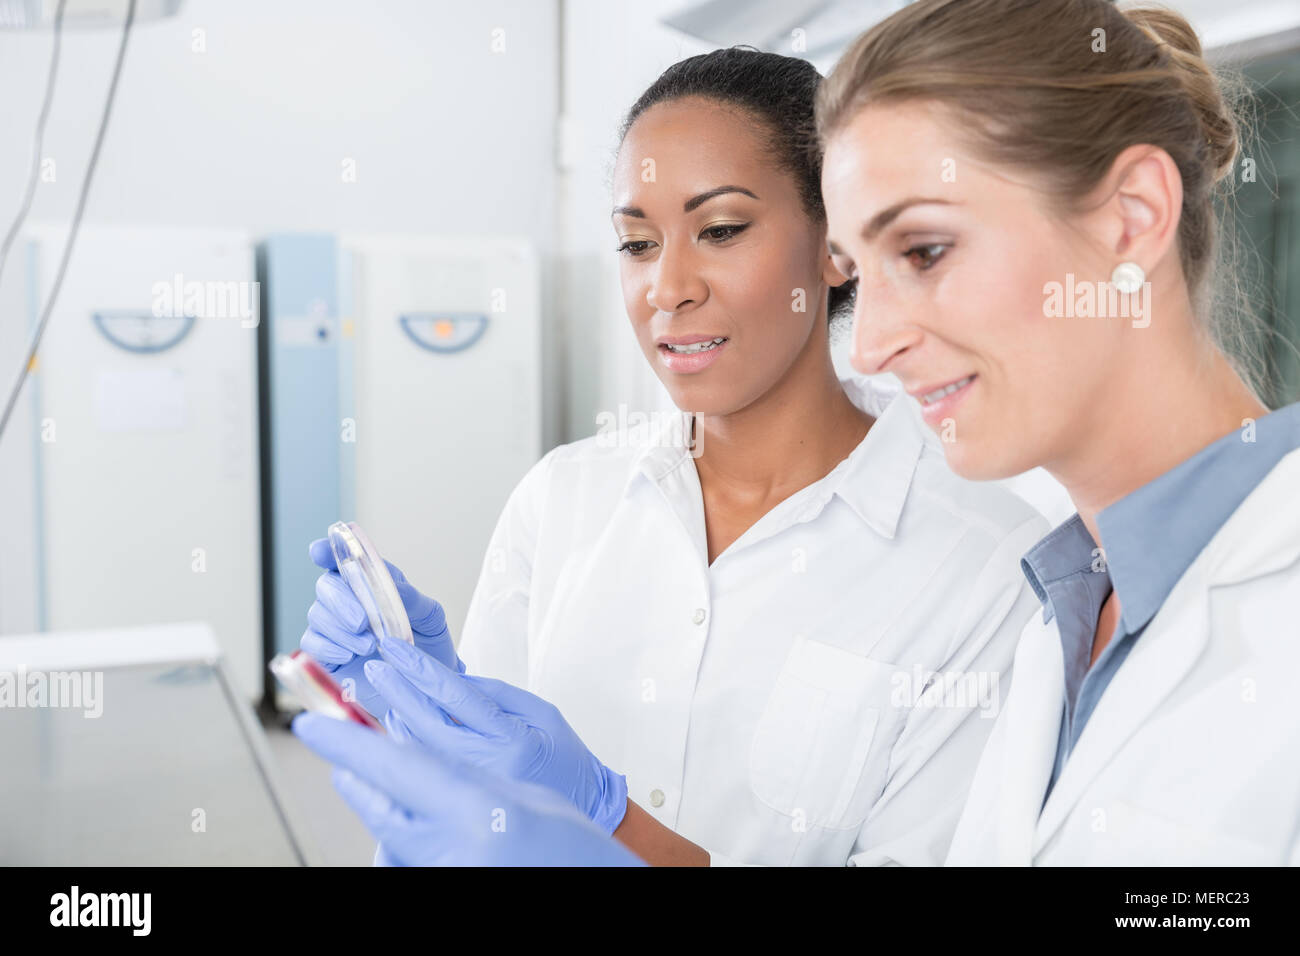 Scientists in research lab with analyzing instrument talking about results - Stock Image